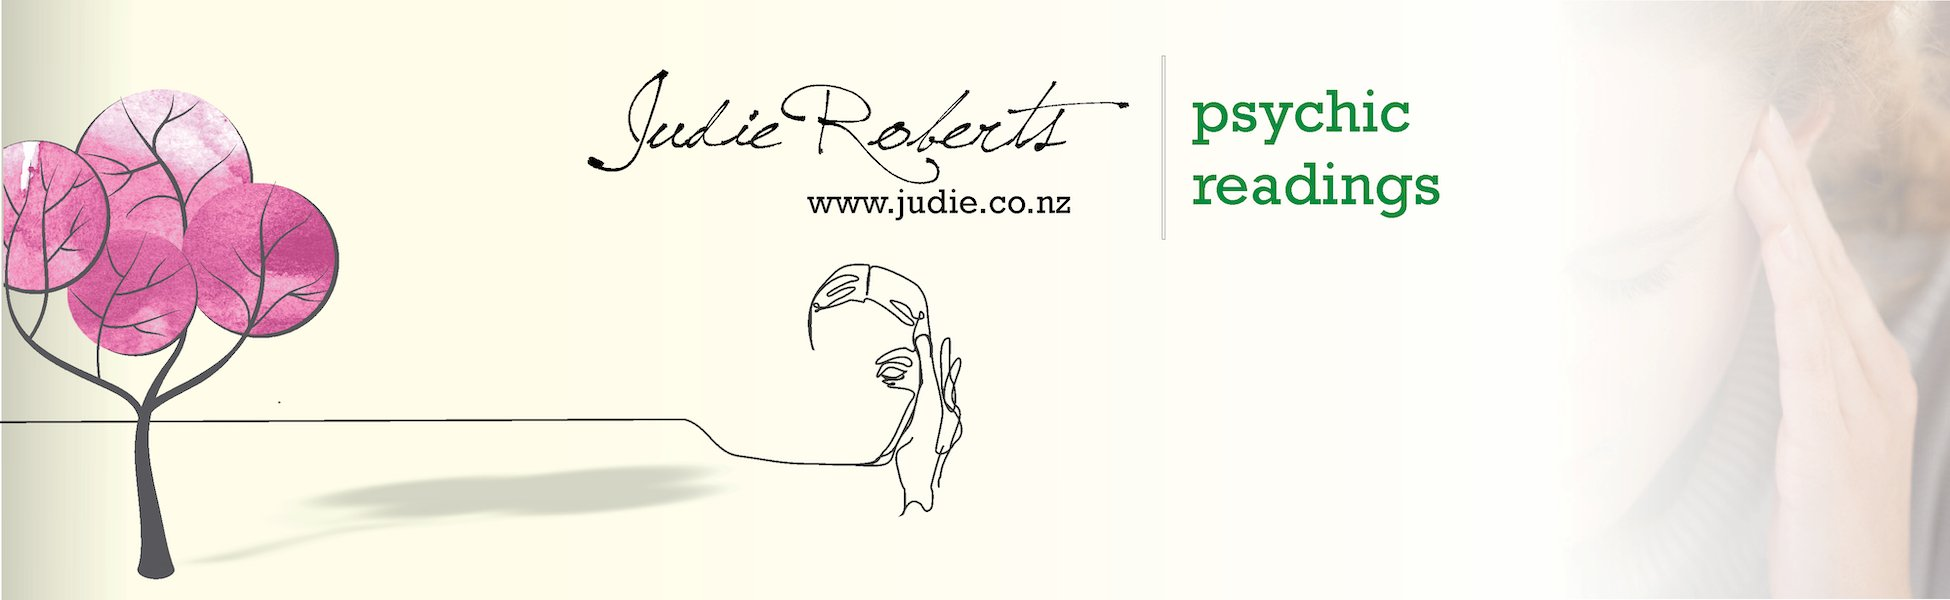 Psychic Readings with Judie Roberts